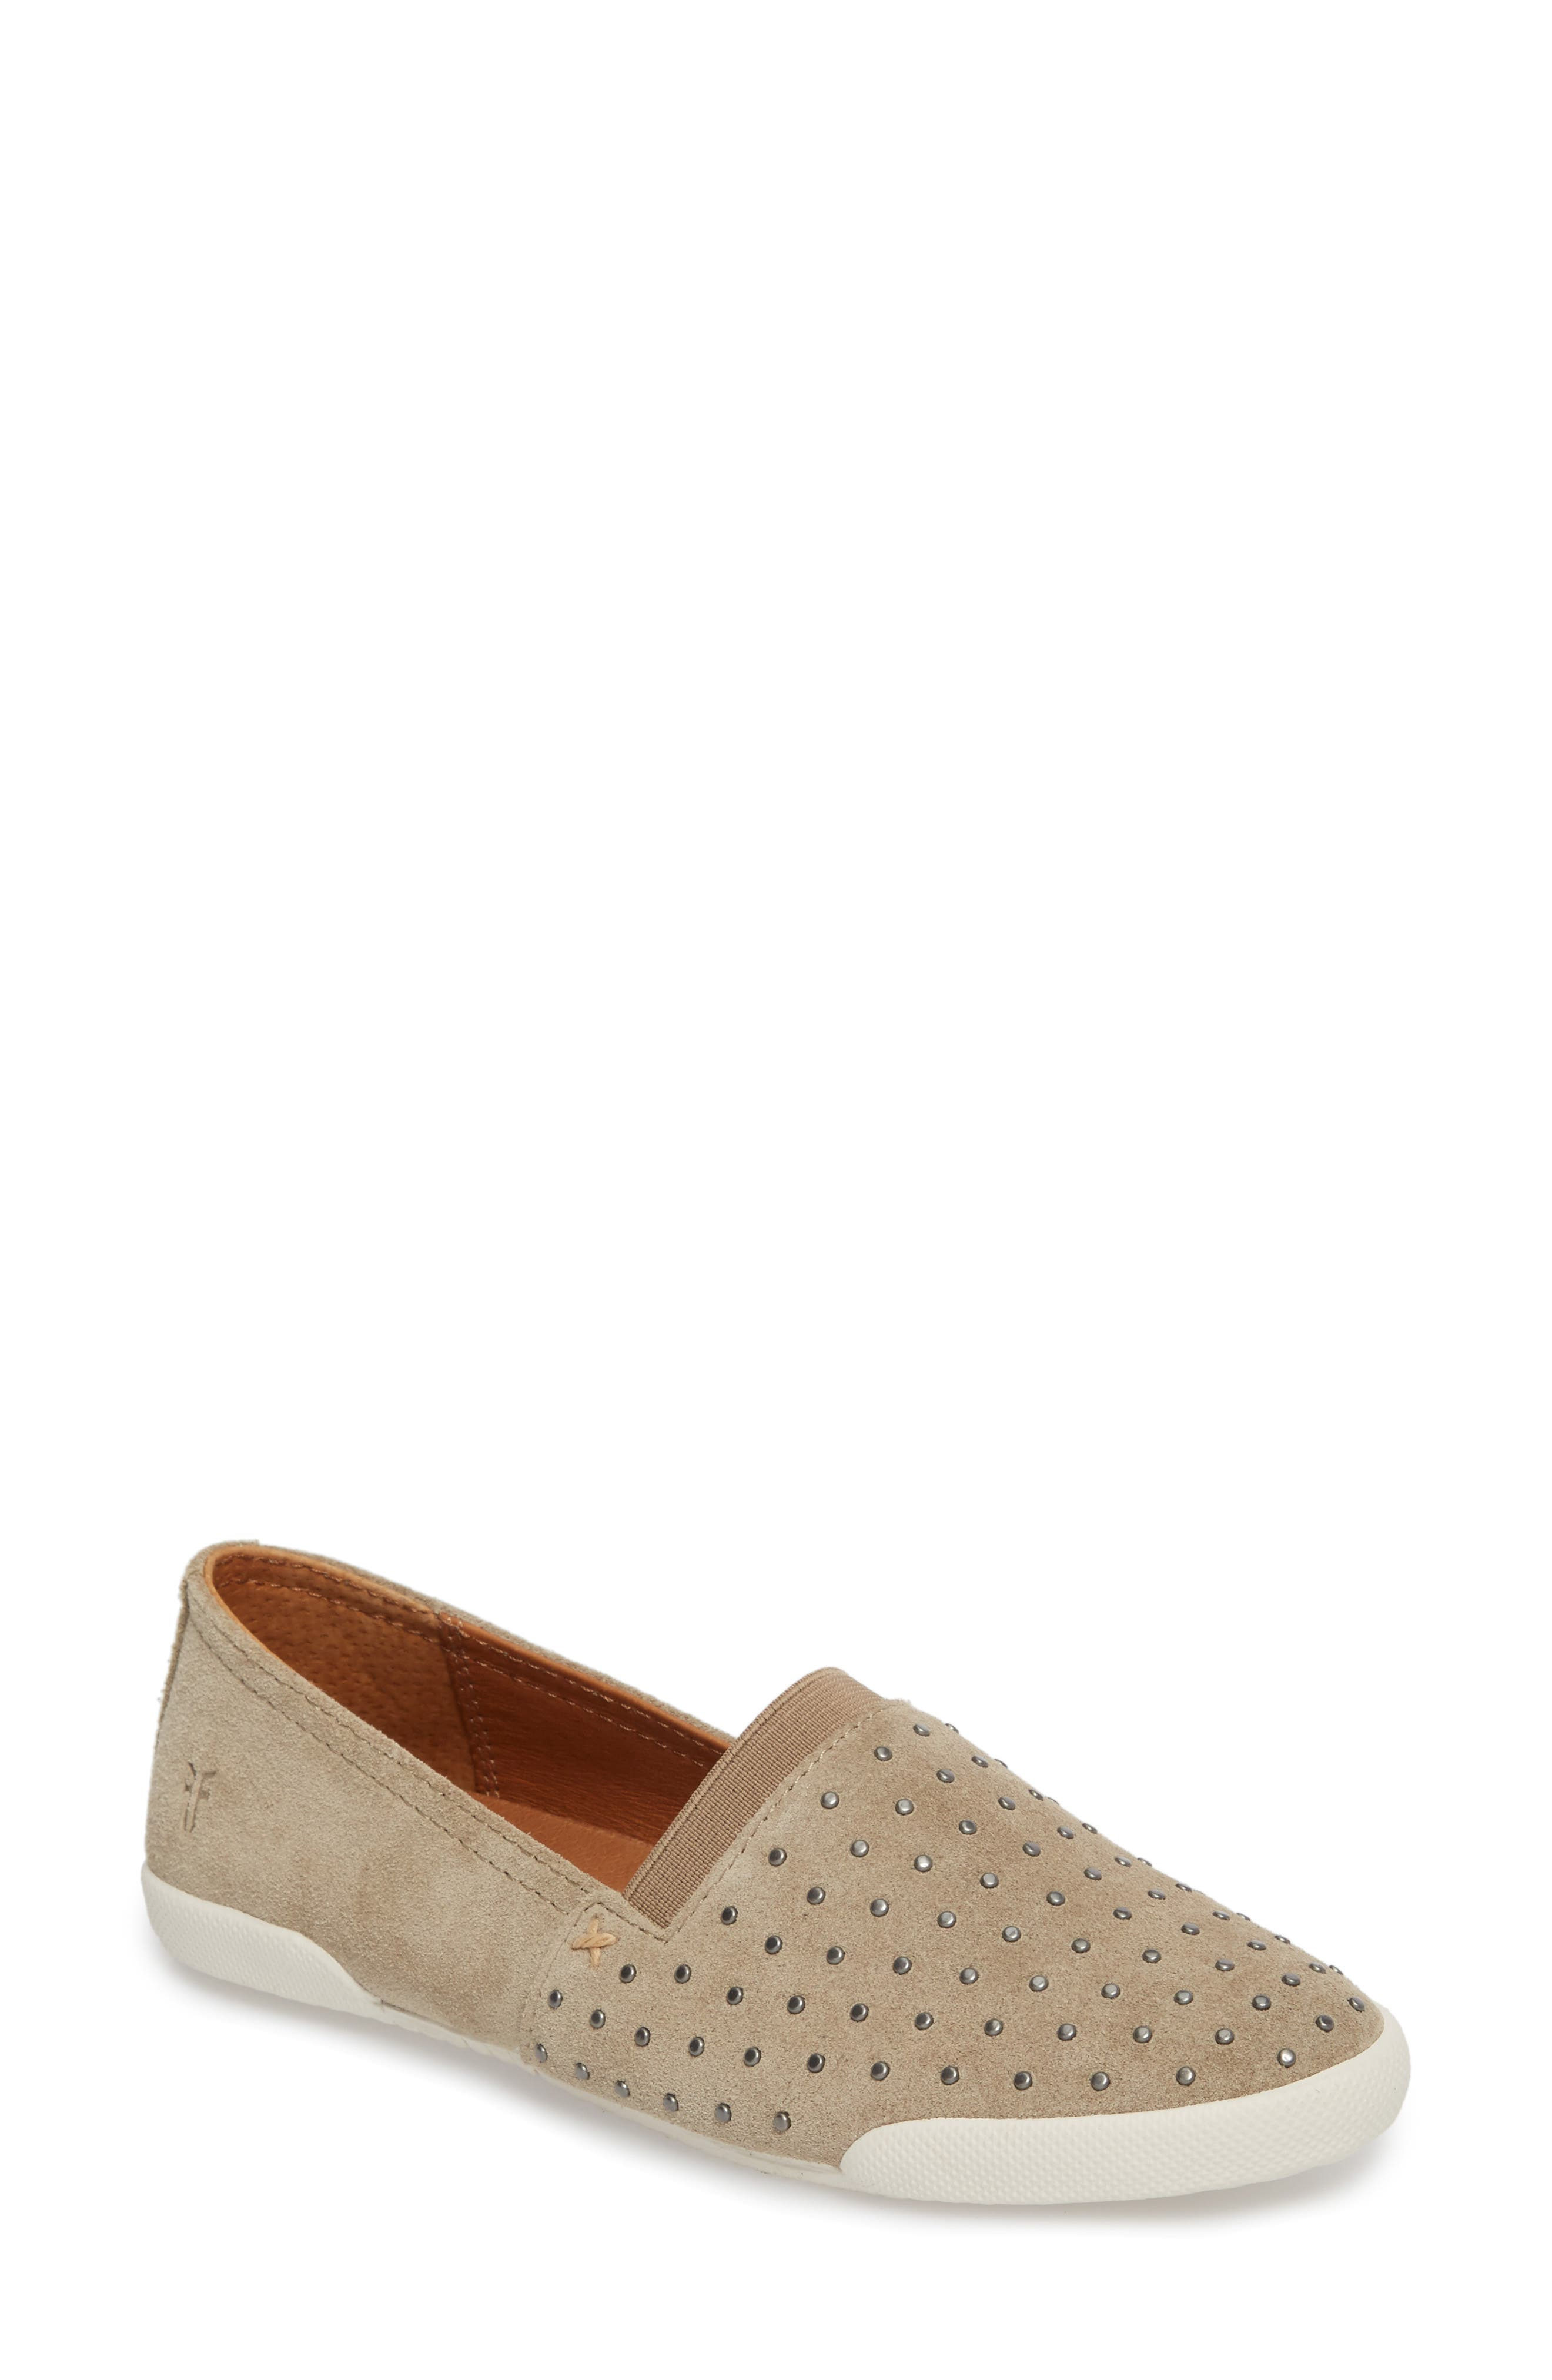 Main Image - Frye Melanie Stud Slip-On Sneaker (Women)